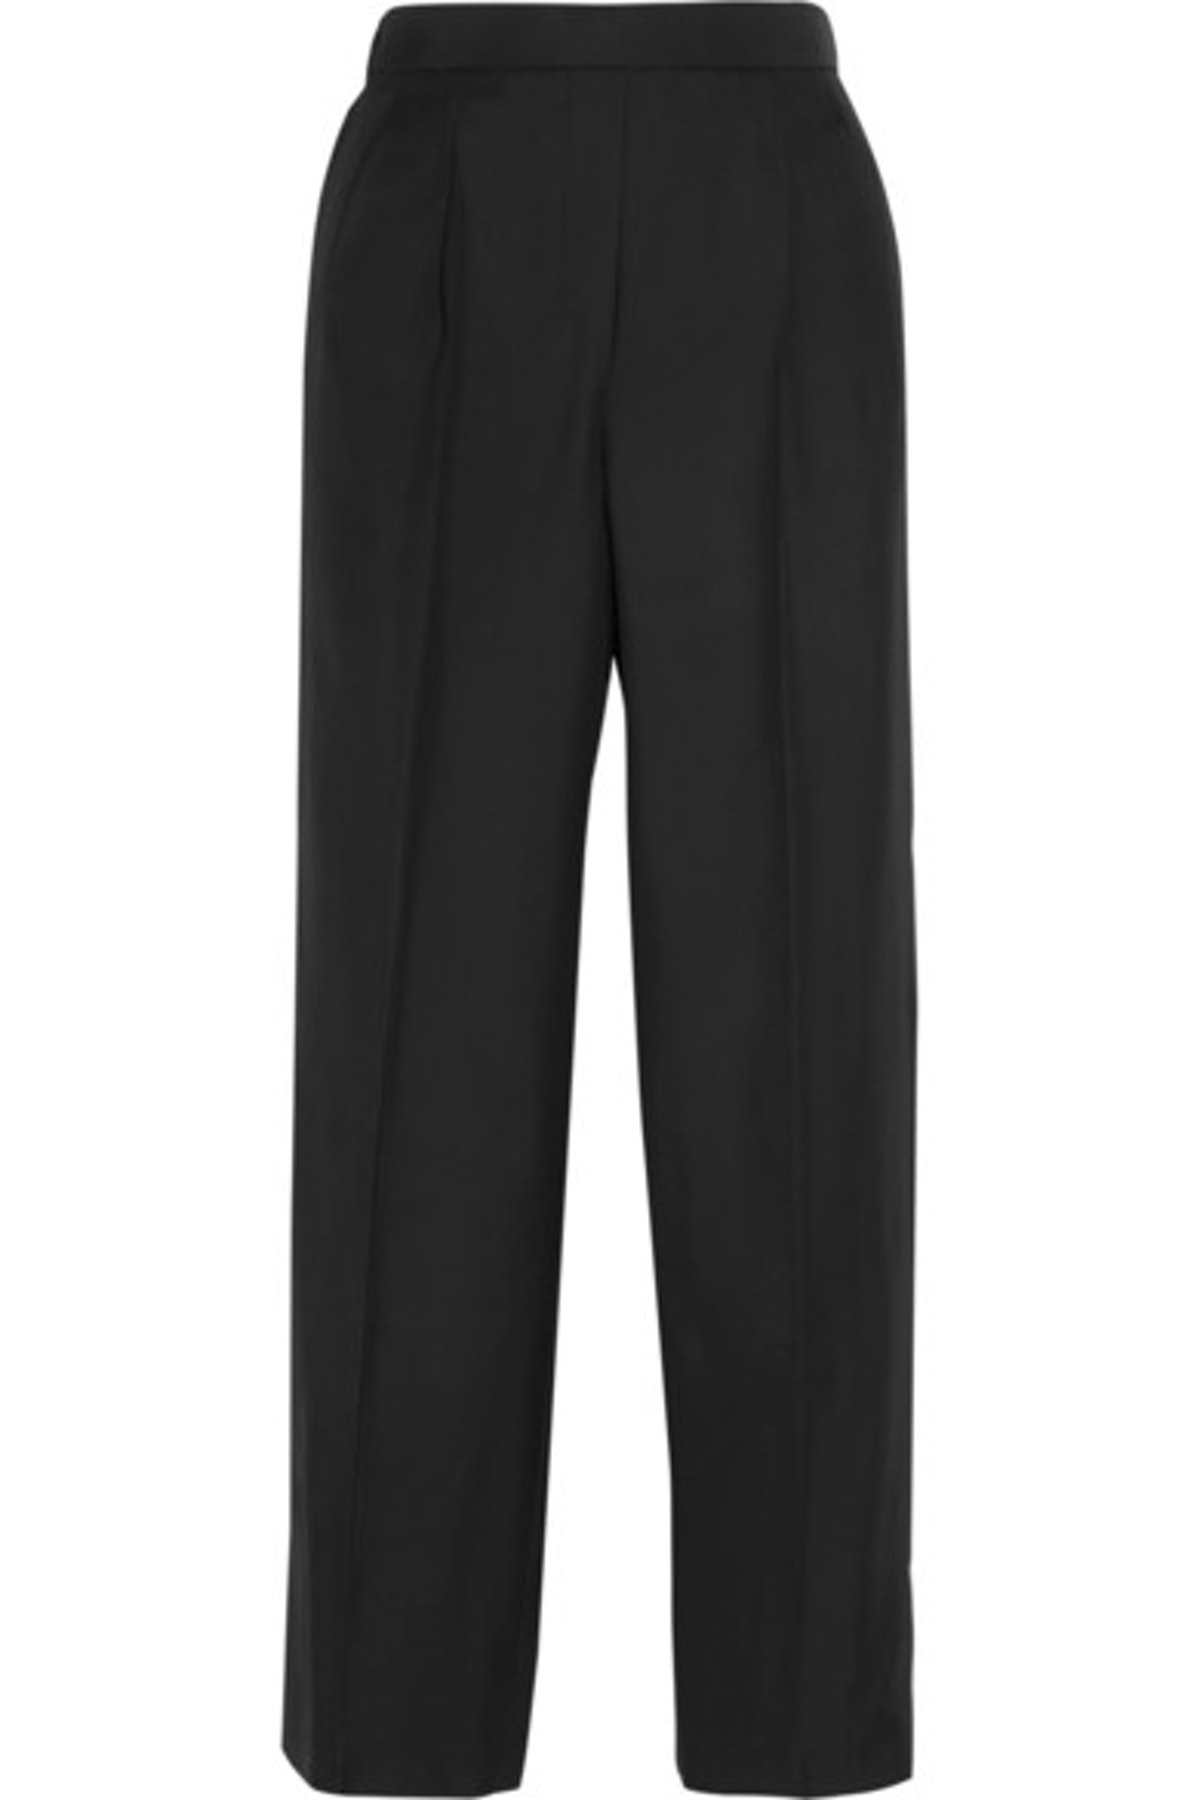 9. THE ROW TROUSERS